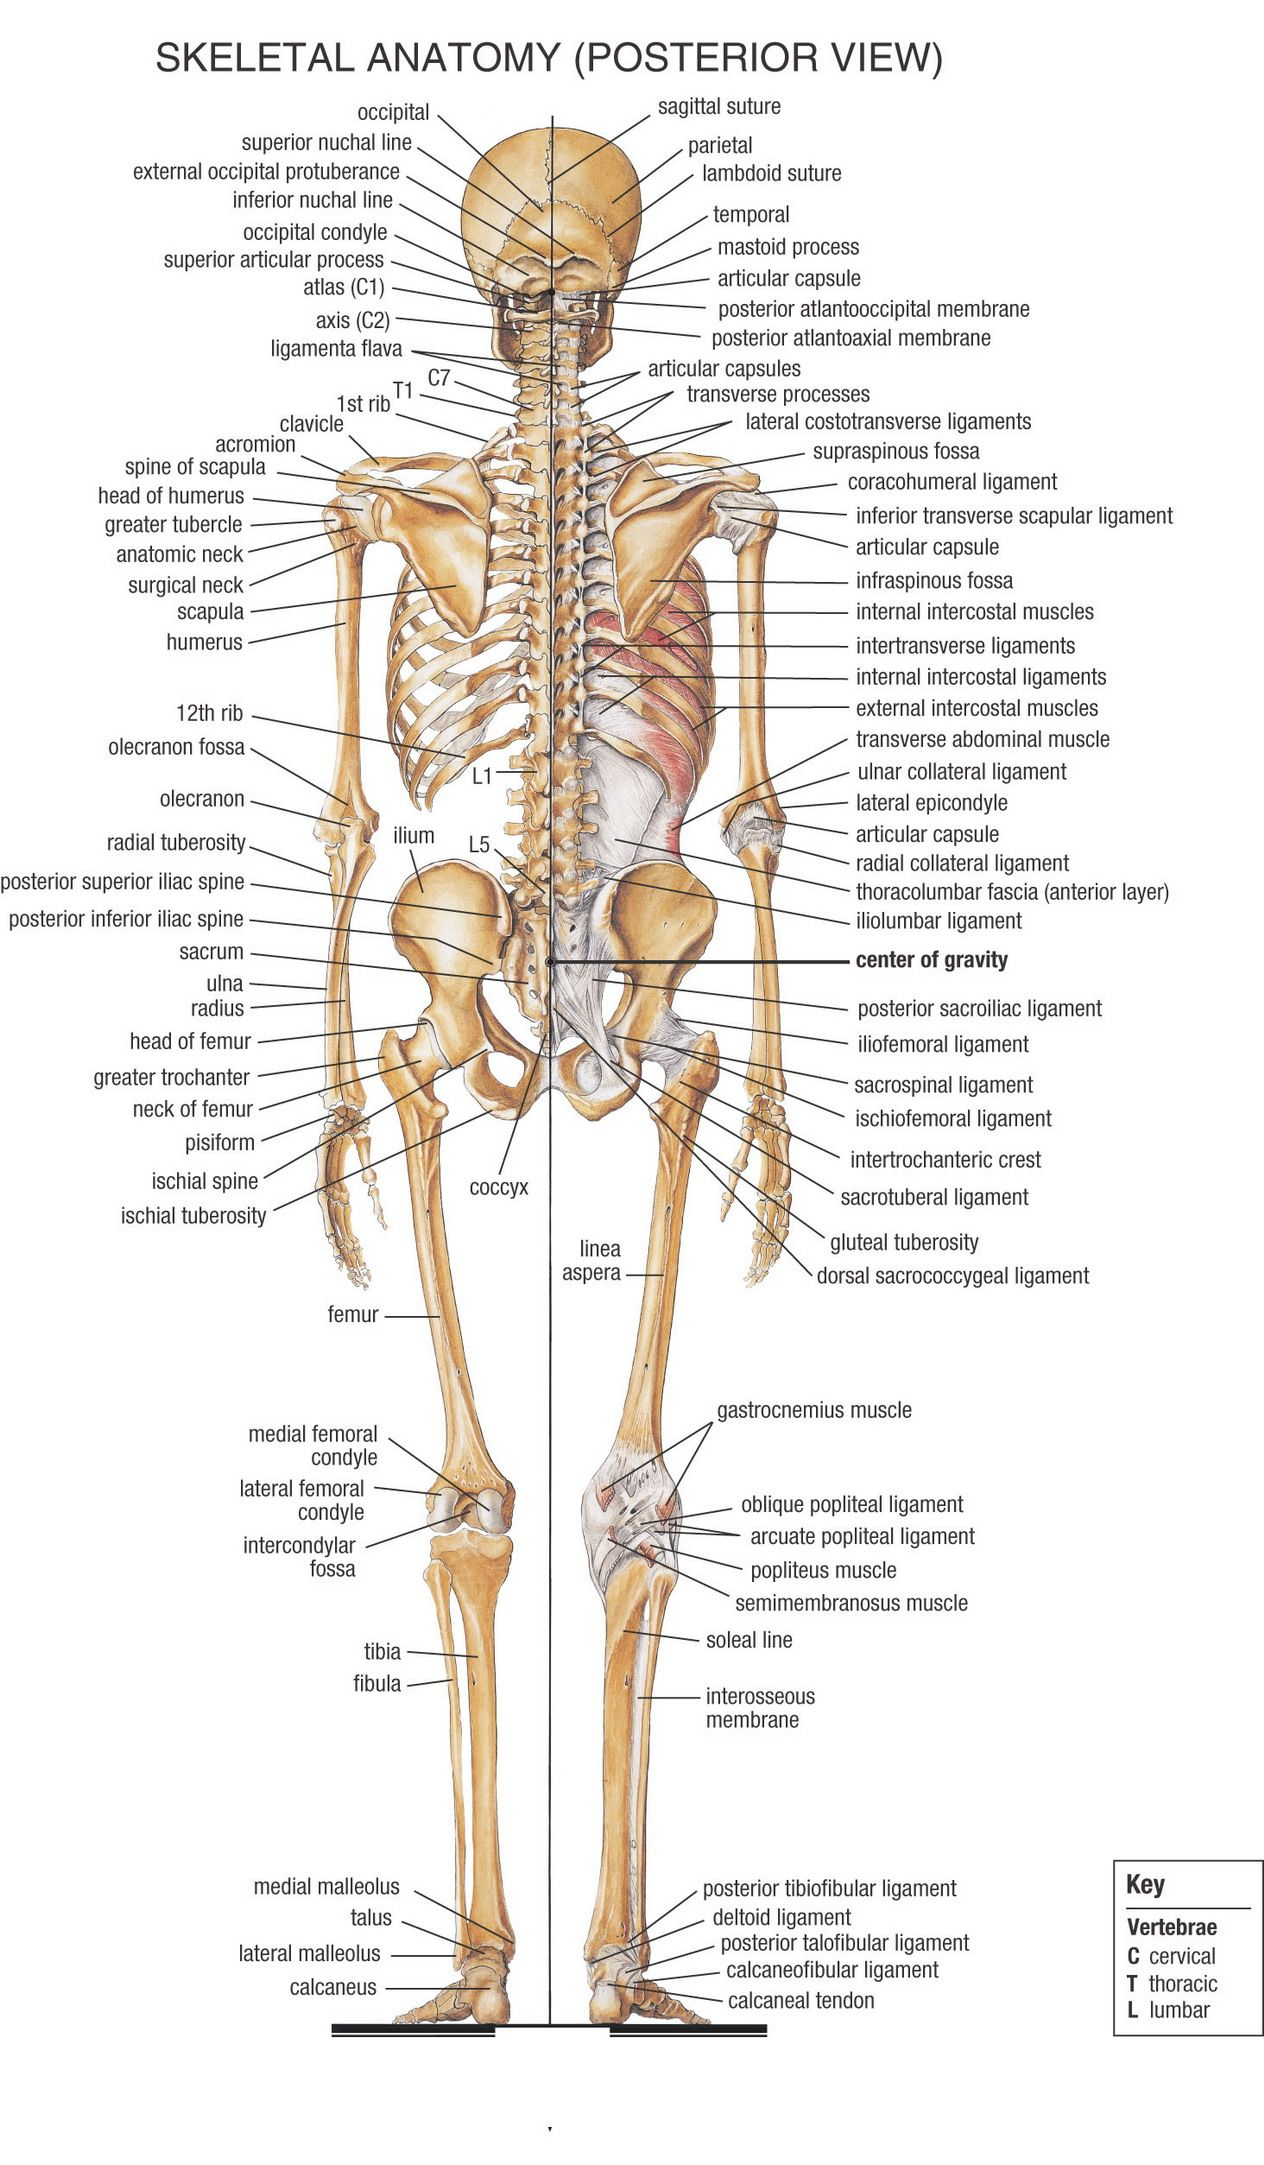 posterior view of pelvis | 18 Skeletal Anatomy | The human body ...